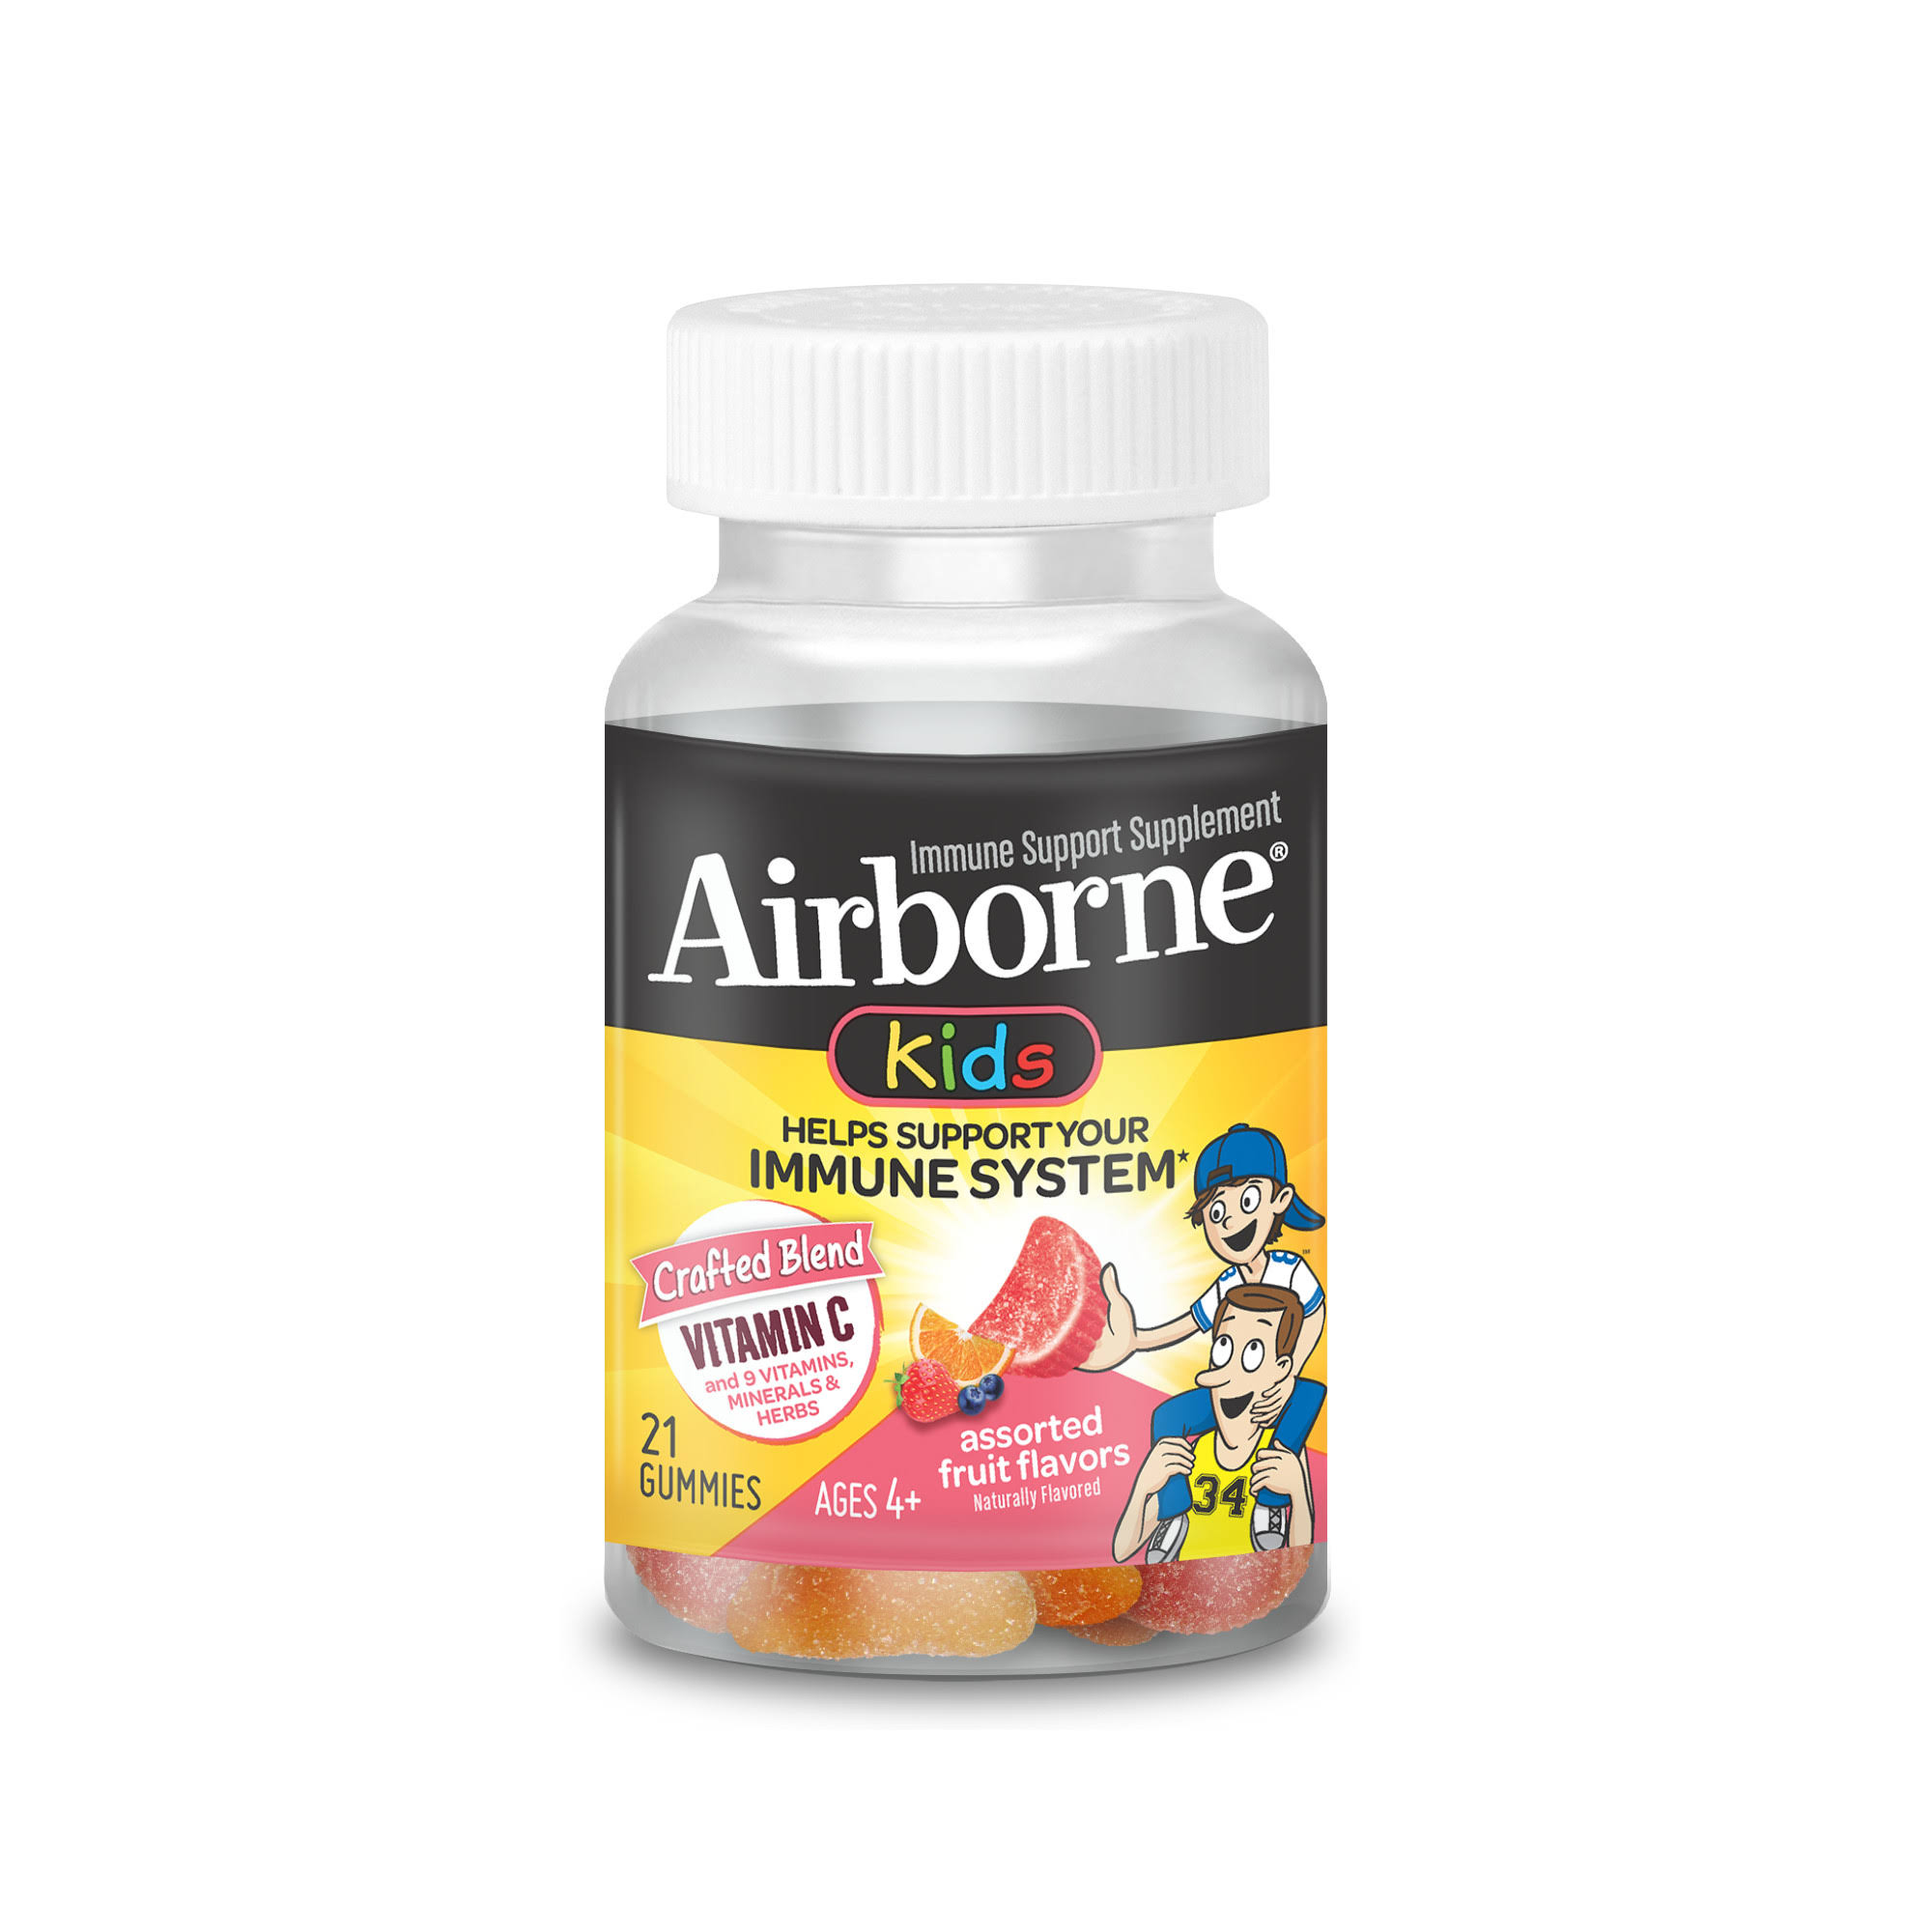 Airborne Kids Gummies Vitamin Immune Support Supplement - 667mg, 21 Gummies